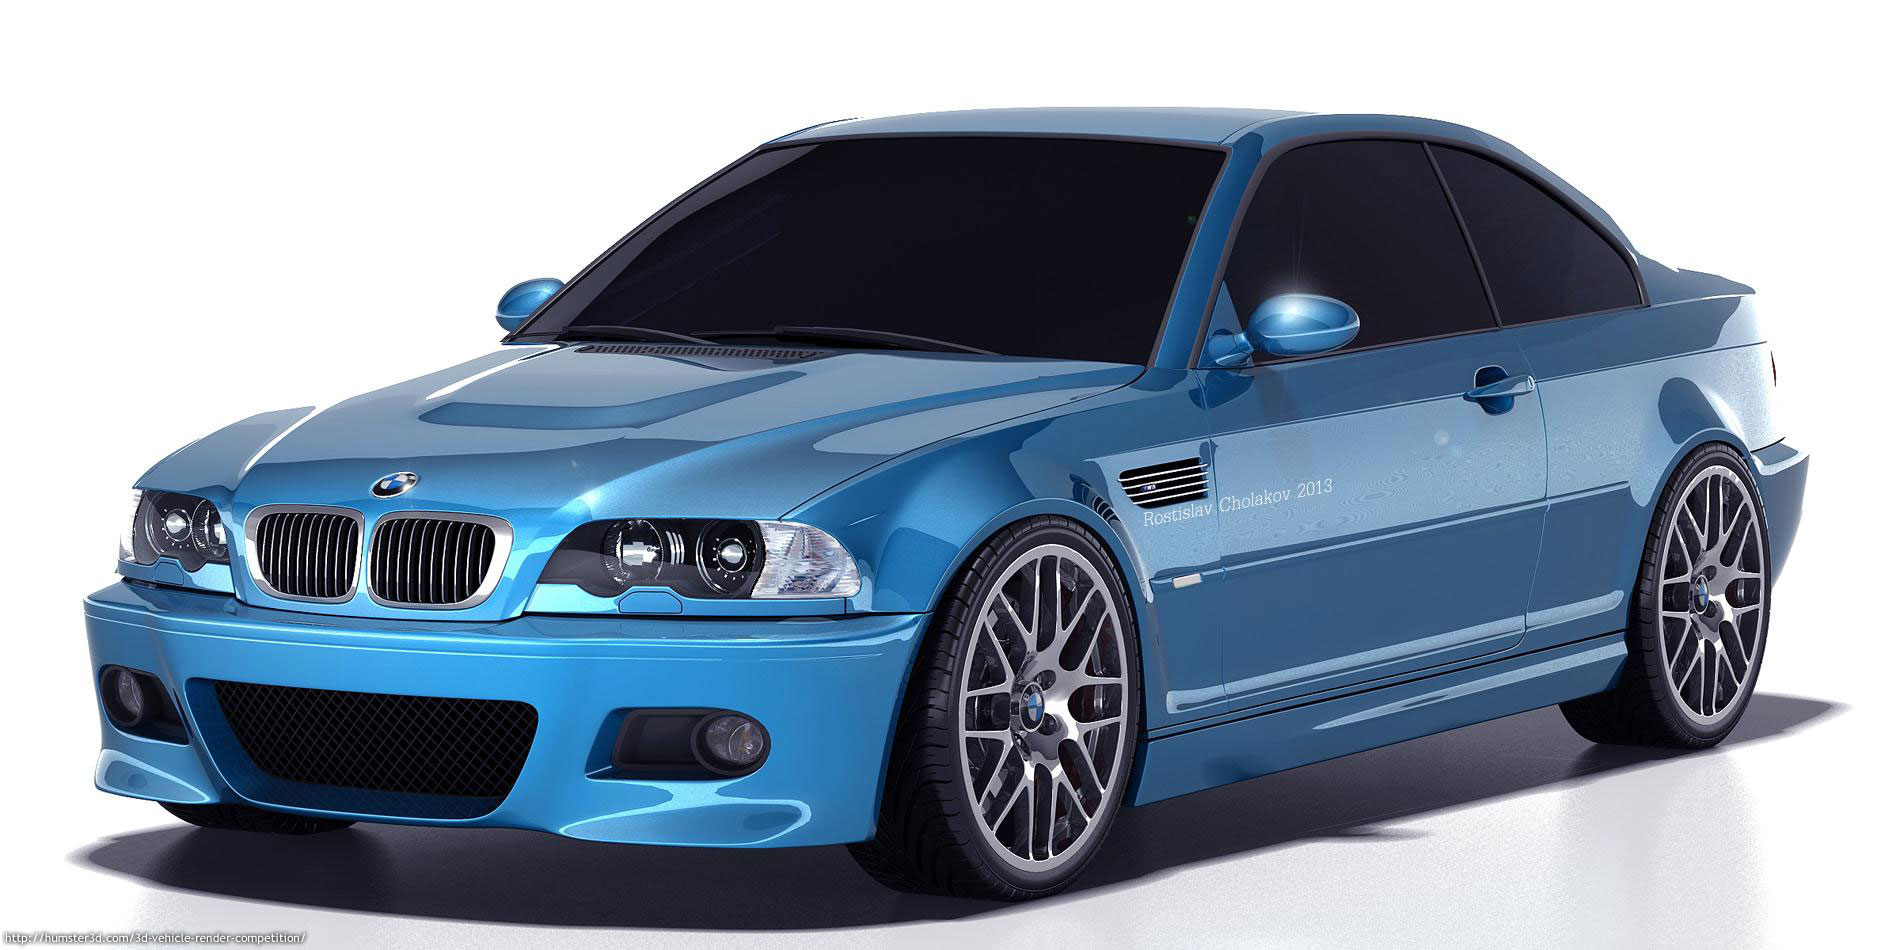 Bmw M3 E46 Render Rostislav Cholakov 3d Vehicle